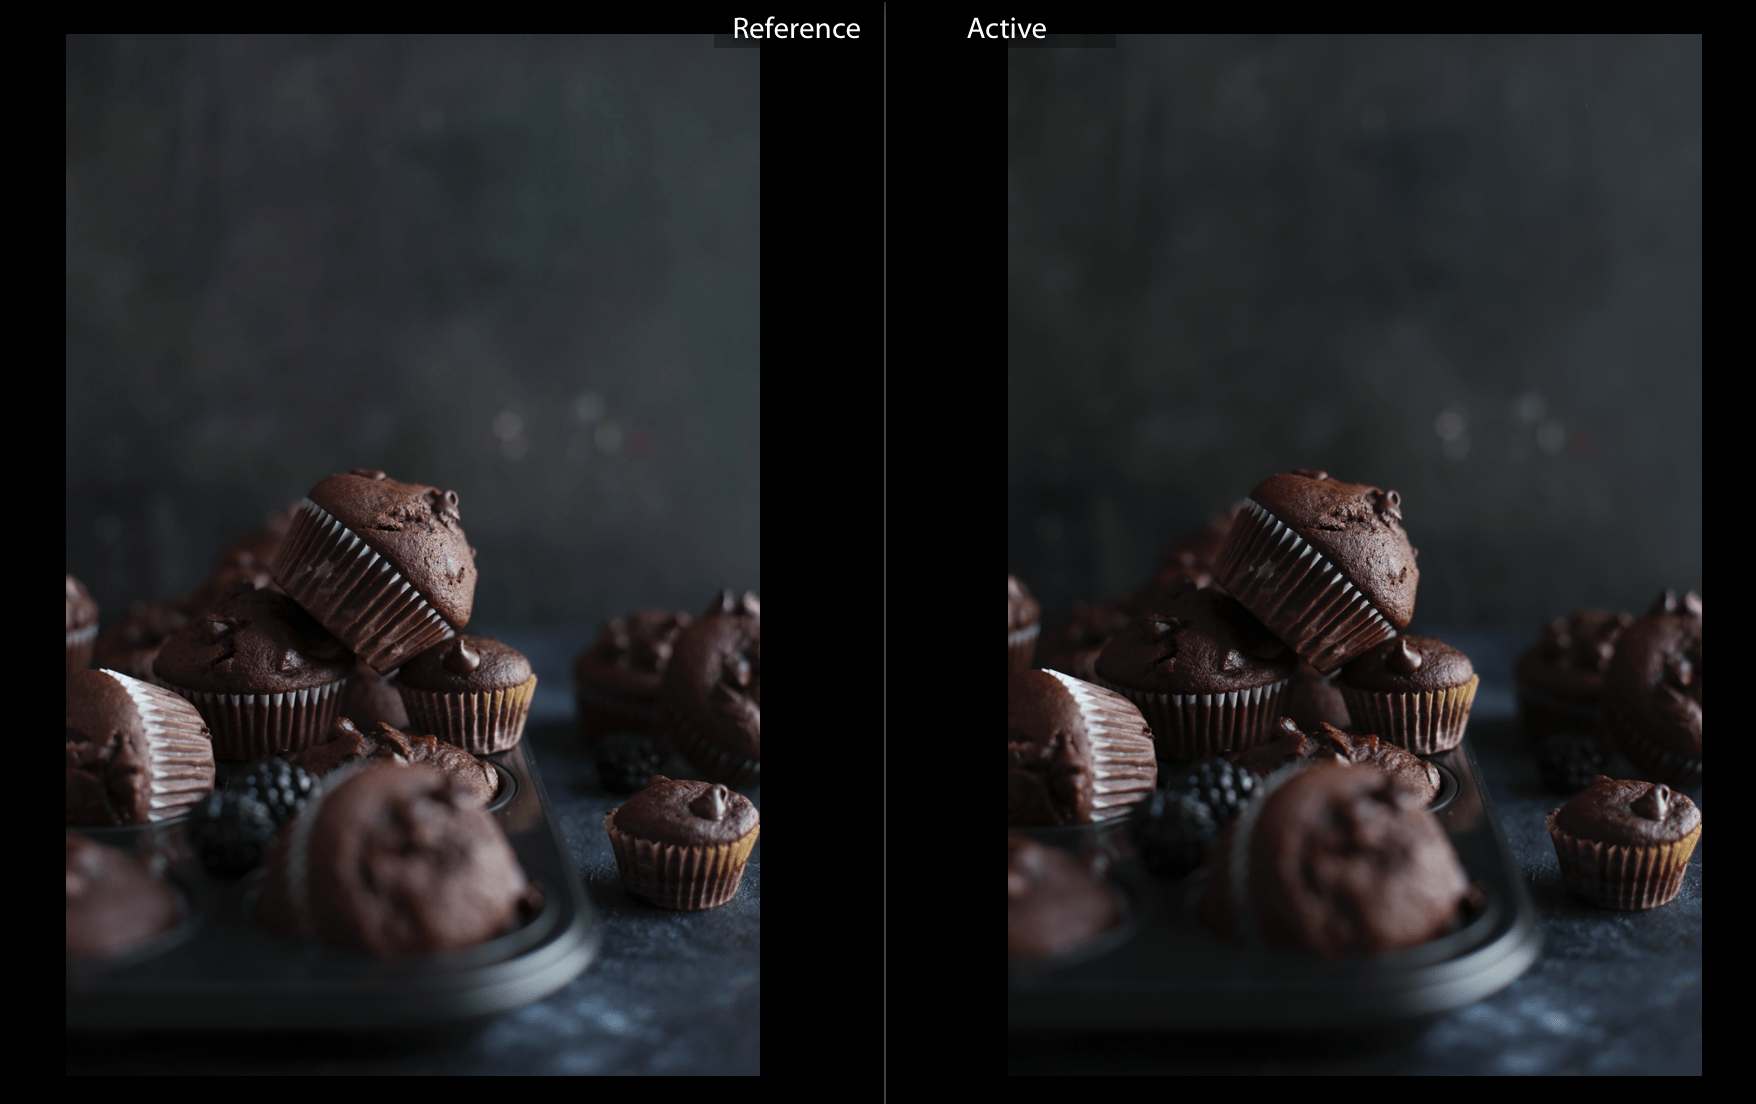 Comparison of unedited RAW and JPEG photo in Lightroom